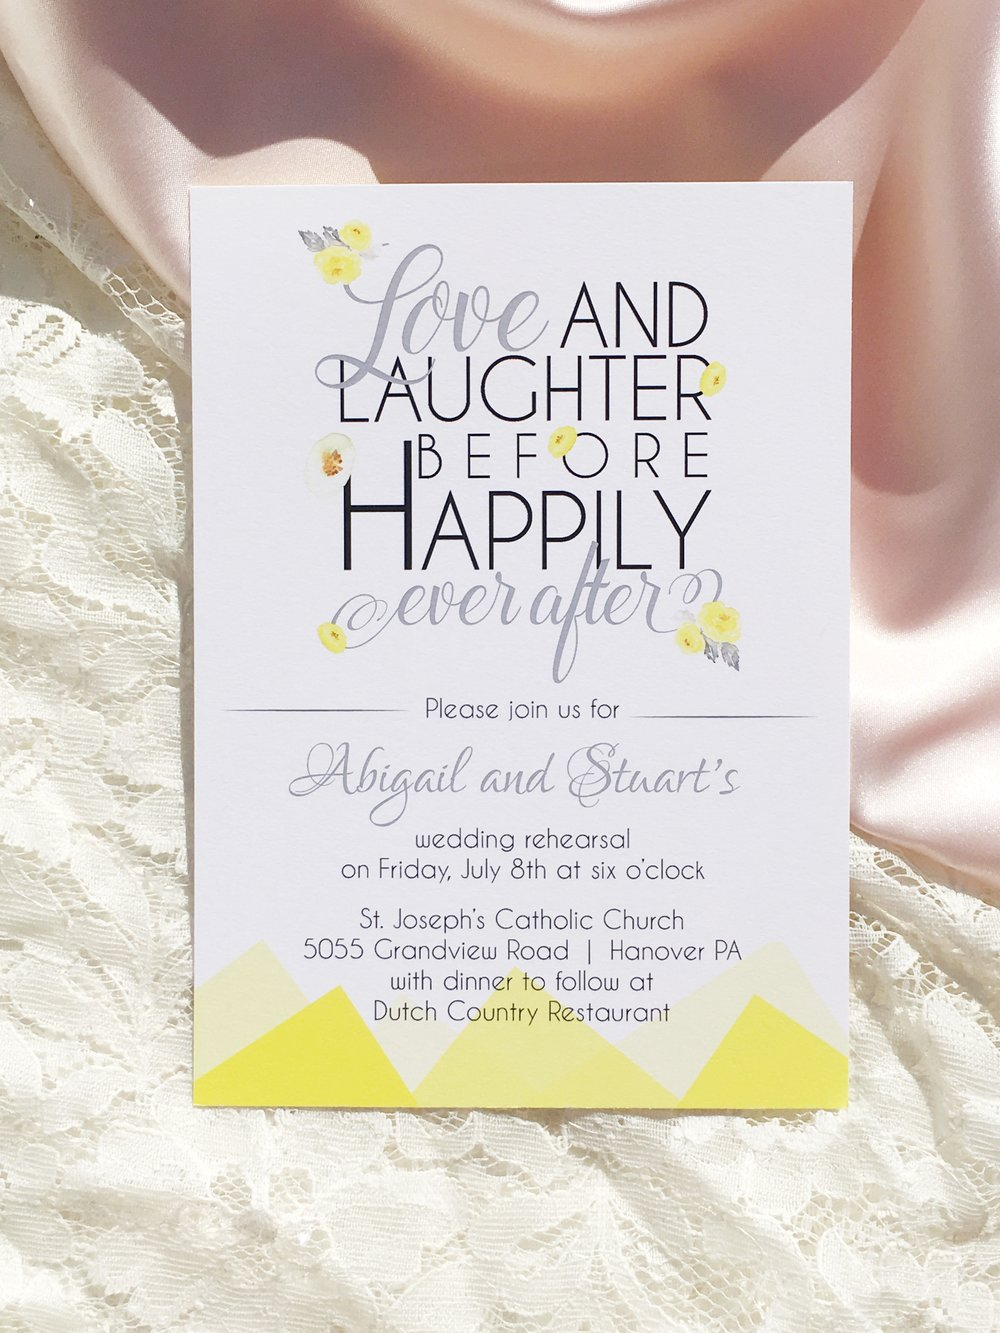 Central PA, York PA, JesSmith Designs, custom, wedding, invitations, bridal, announcements, save the date, baby, hanover, calligraphy, baltimore, wedding invitations, lancaster, gettysburg-06-29 09.02.36.jpg